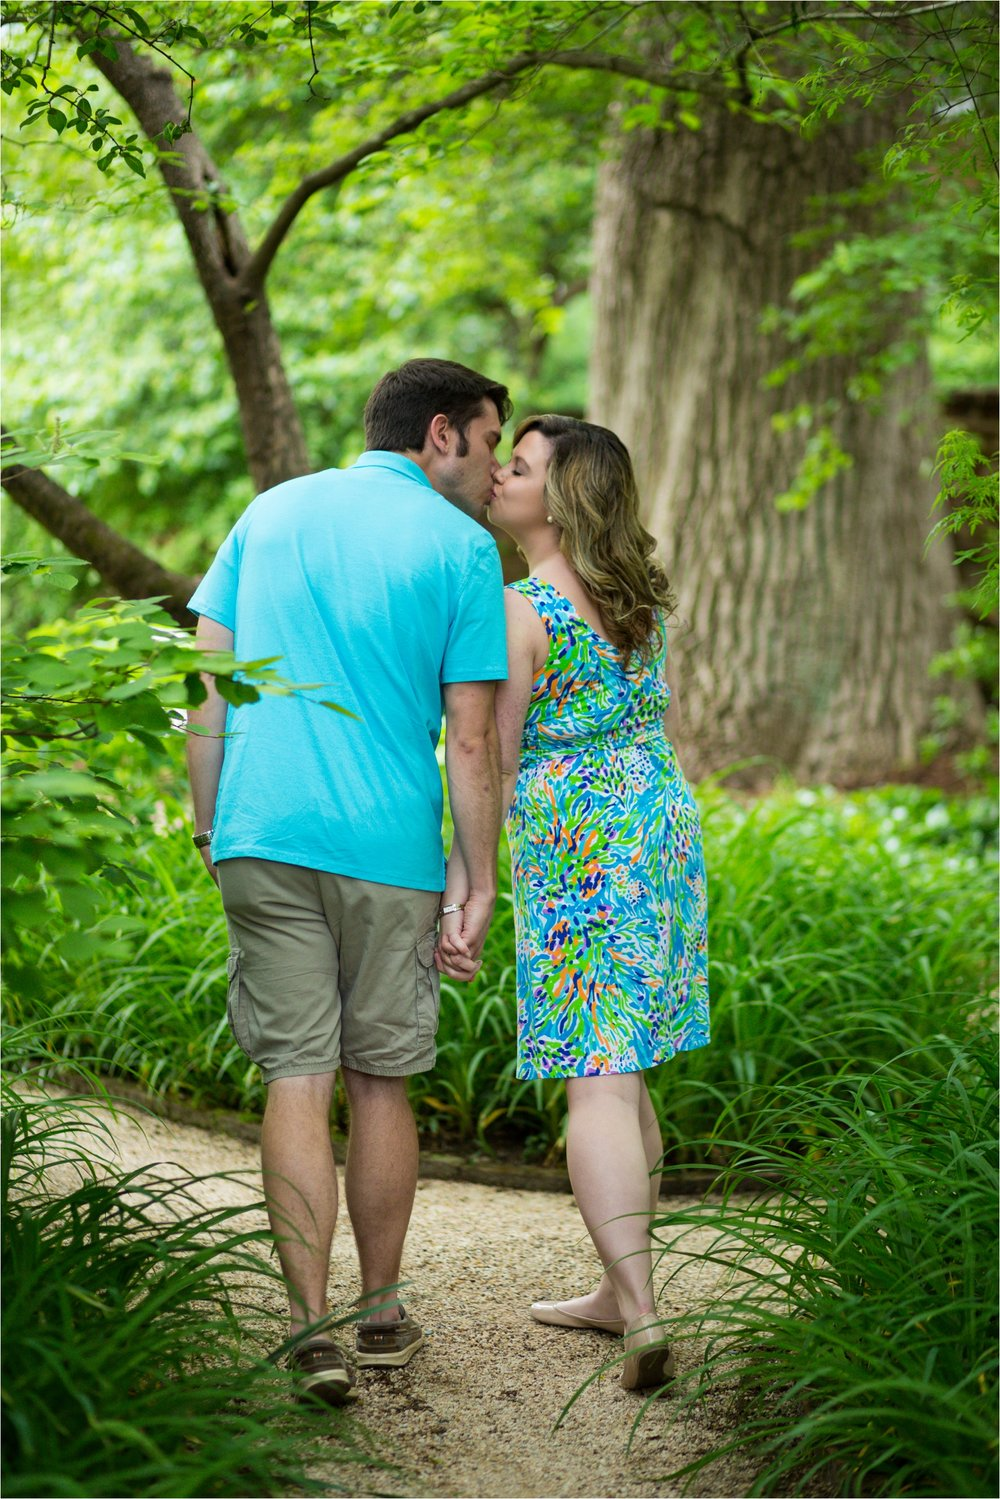 Charlottesville-Virginia-Spring-Engagement-Session-4793.jpg